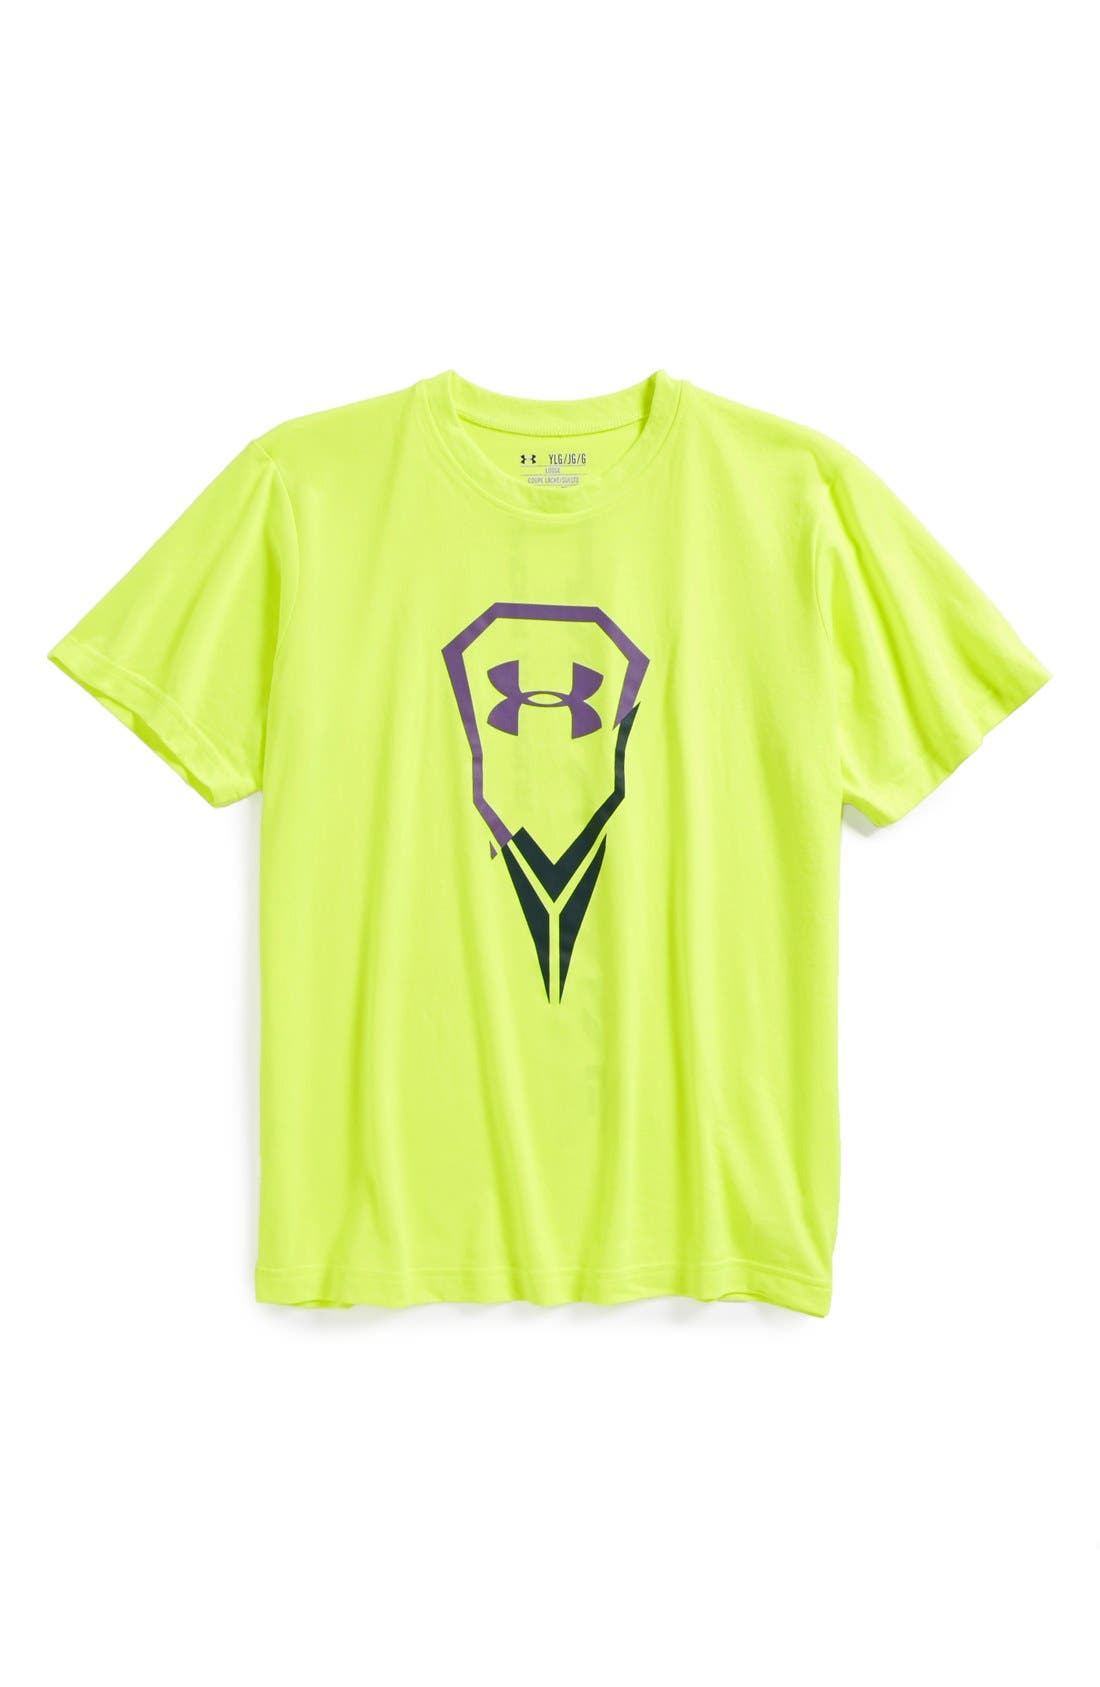 Main Image - Under Armour 'Ripped LAX Icon' HeatGear® T-Shirt (Big Boys)